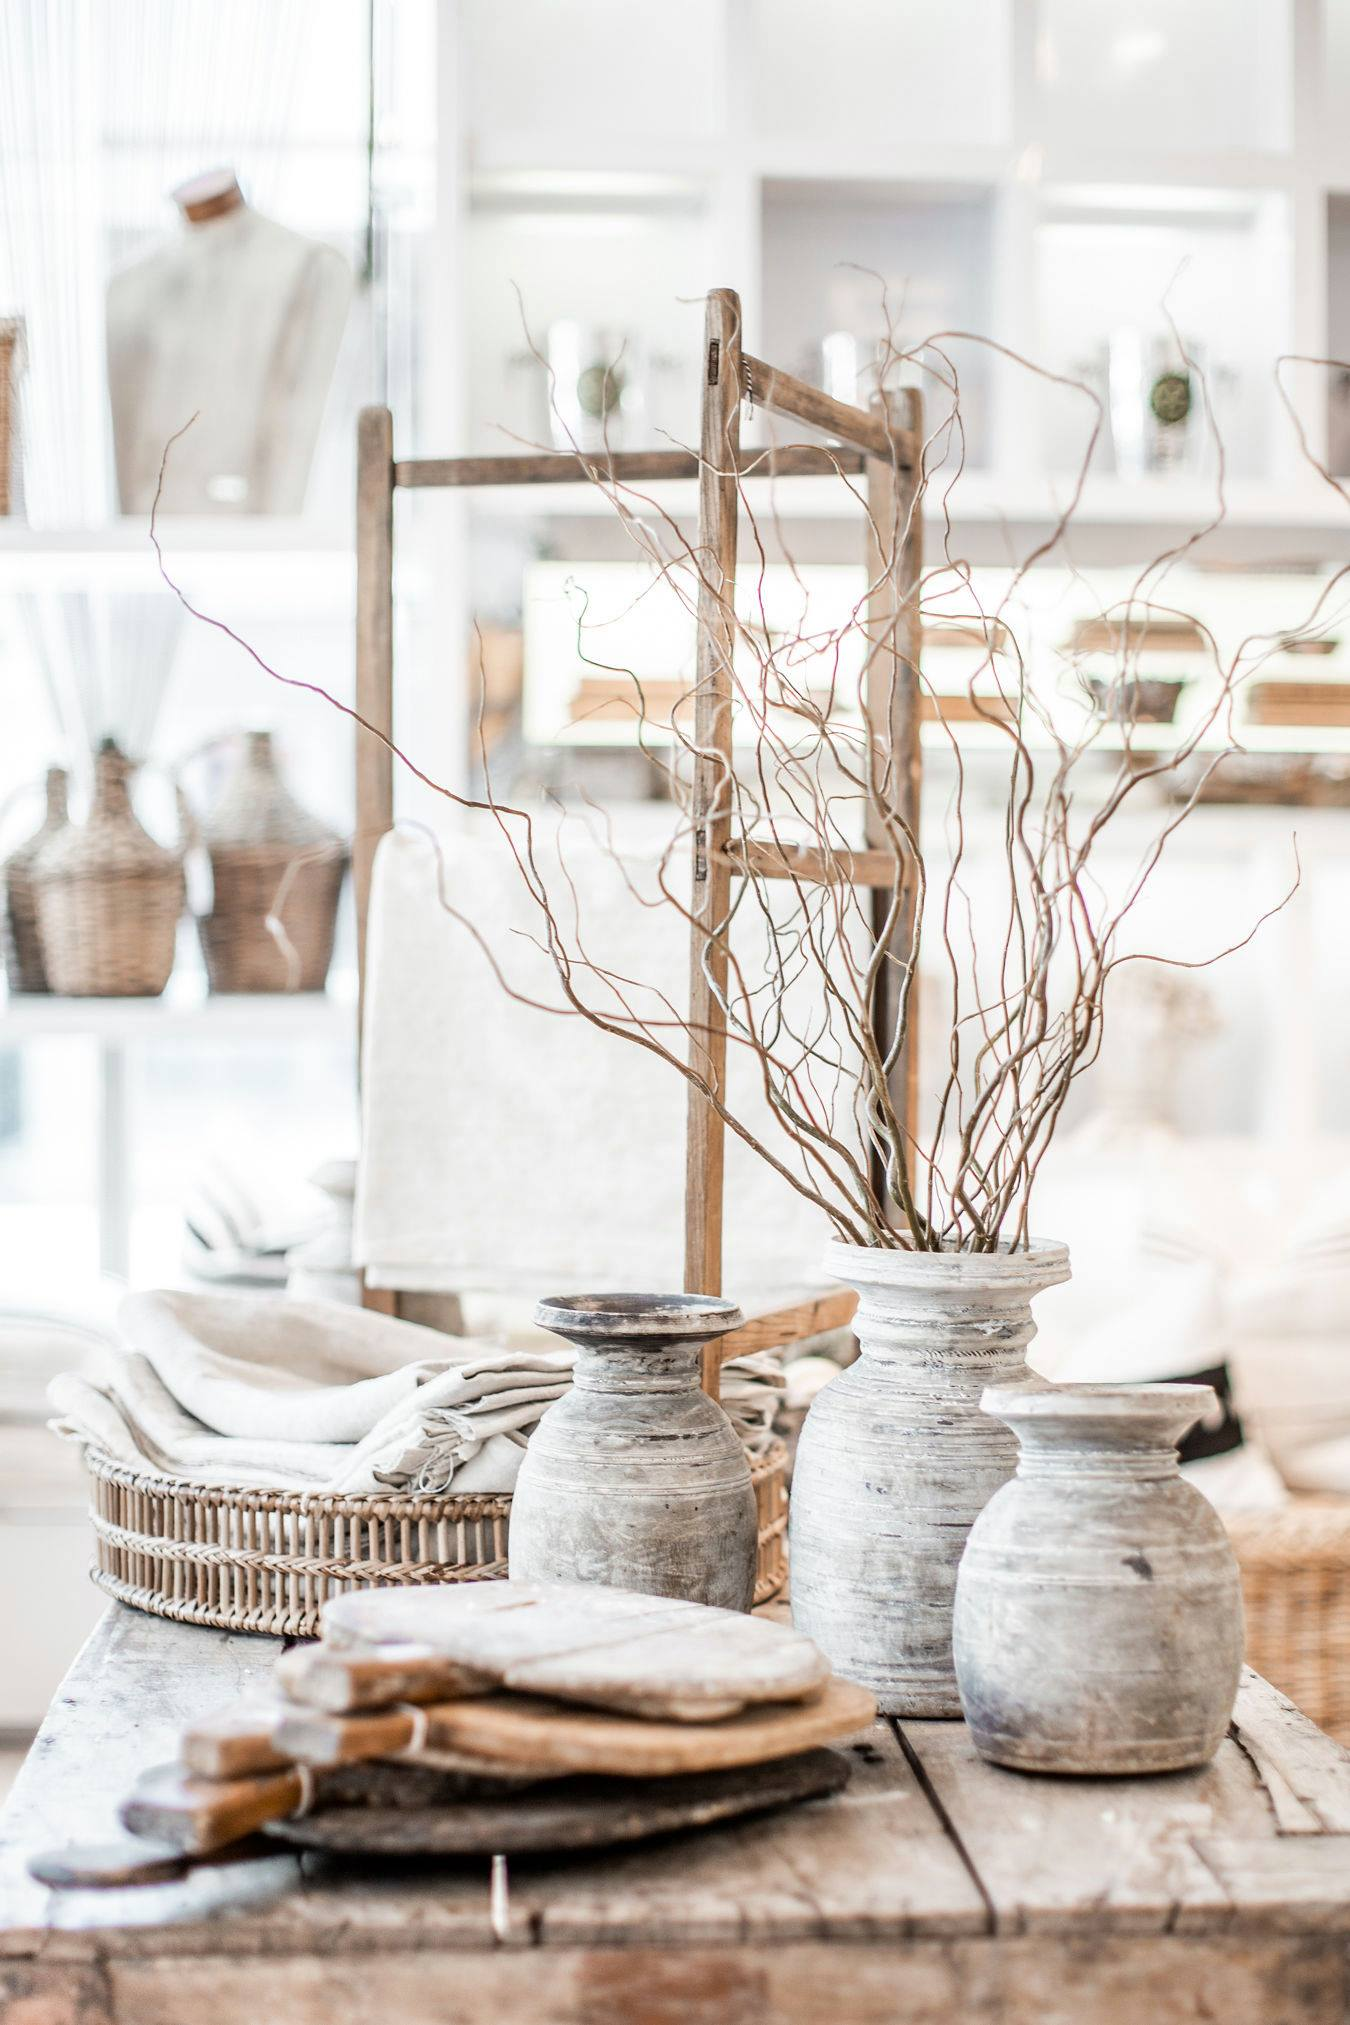 Home Decor and Fashion Pop Up Experience